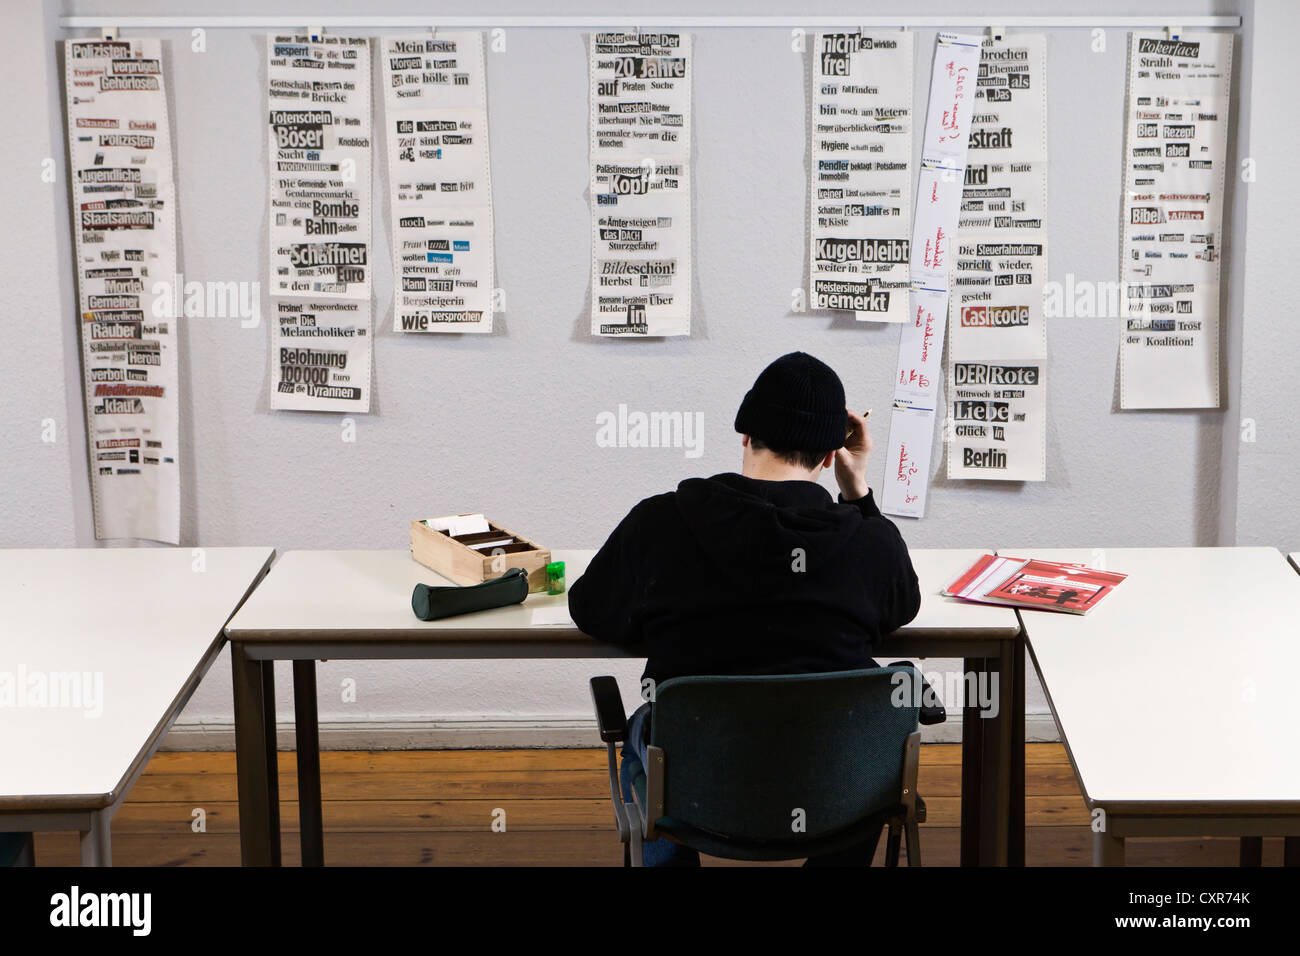 Illiterate doing writing exercises at Lesen und Schreiben, German for Read and Write, a learning facility in Neukoelln, - Stock Image